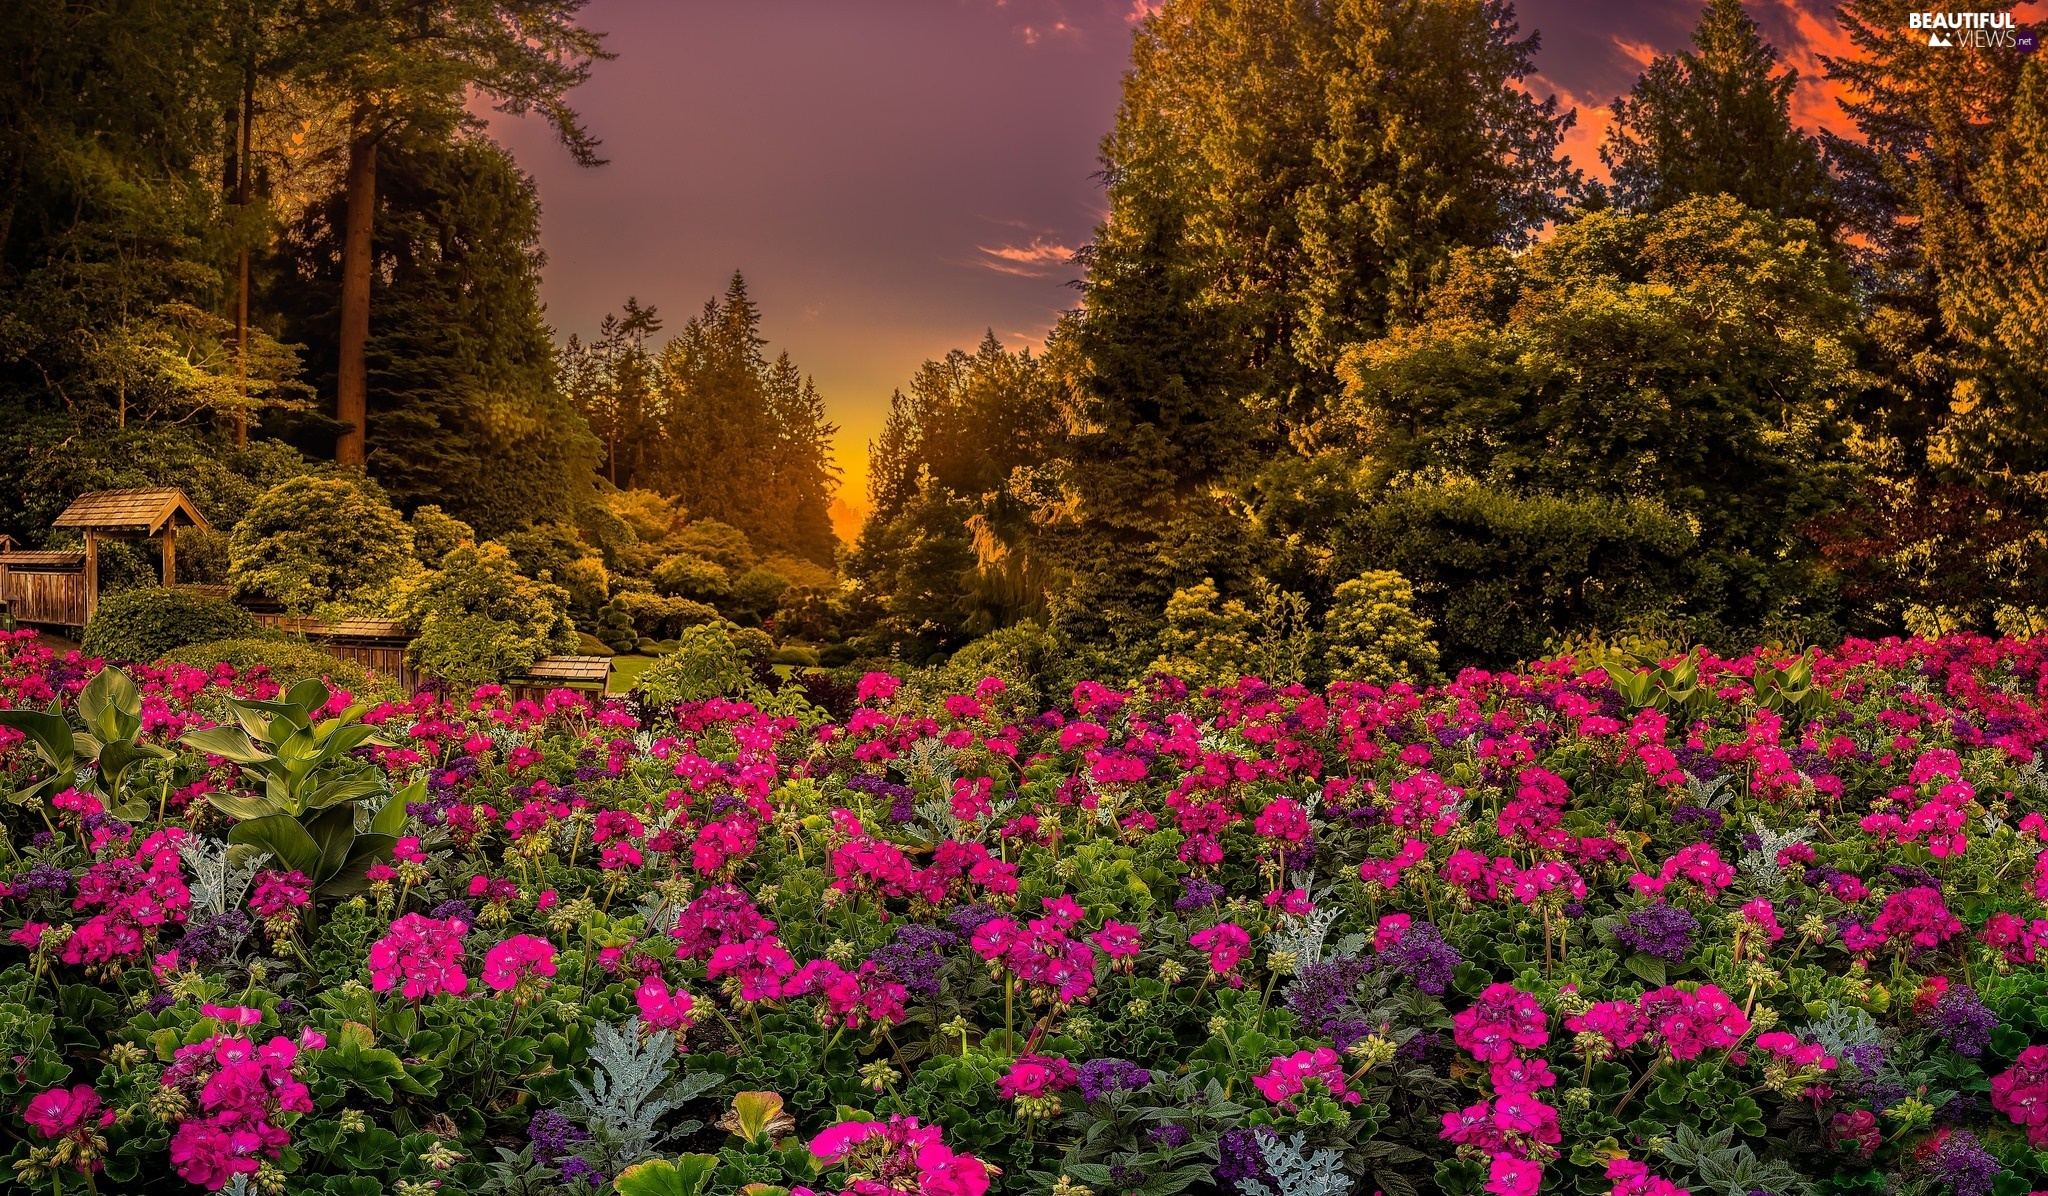 Flowers, British Columbia, Park, viewes, Garden, Canada, Brentwood Bay, Great Sunsets, trees, Butchart Gardens